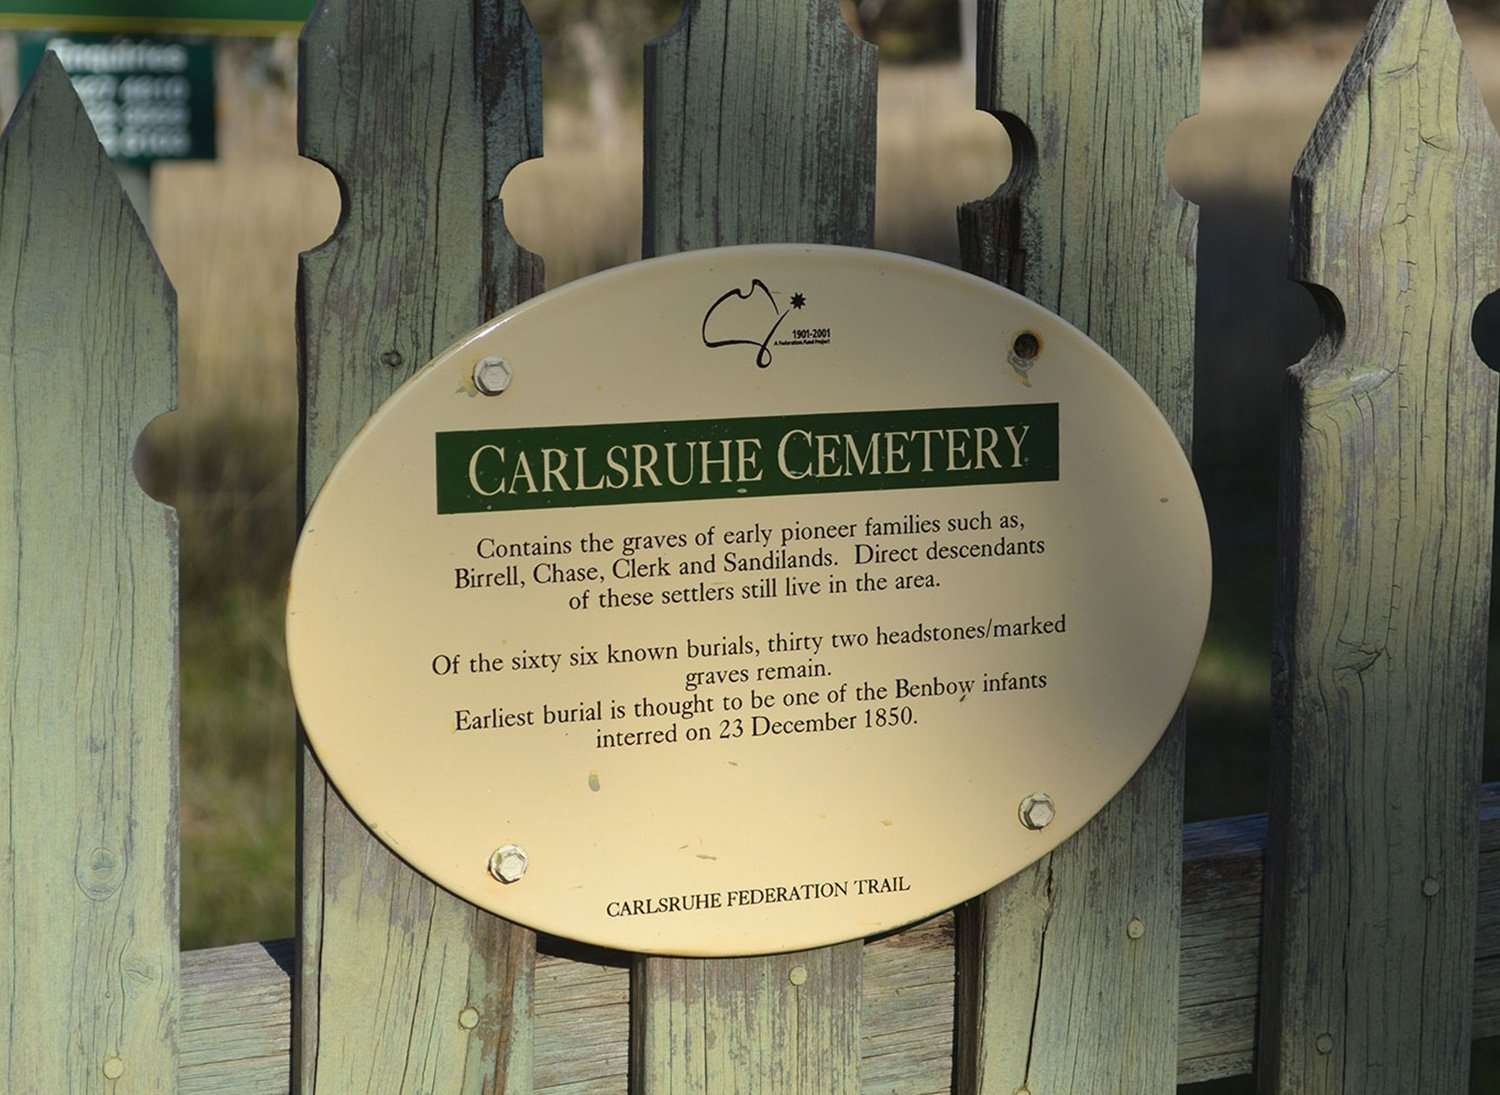 Carlsruhe Cemetery | cemetery management software by Chronicle | Chronicle